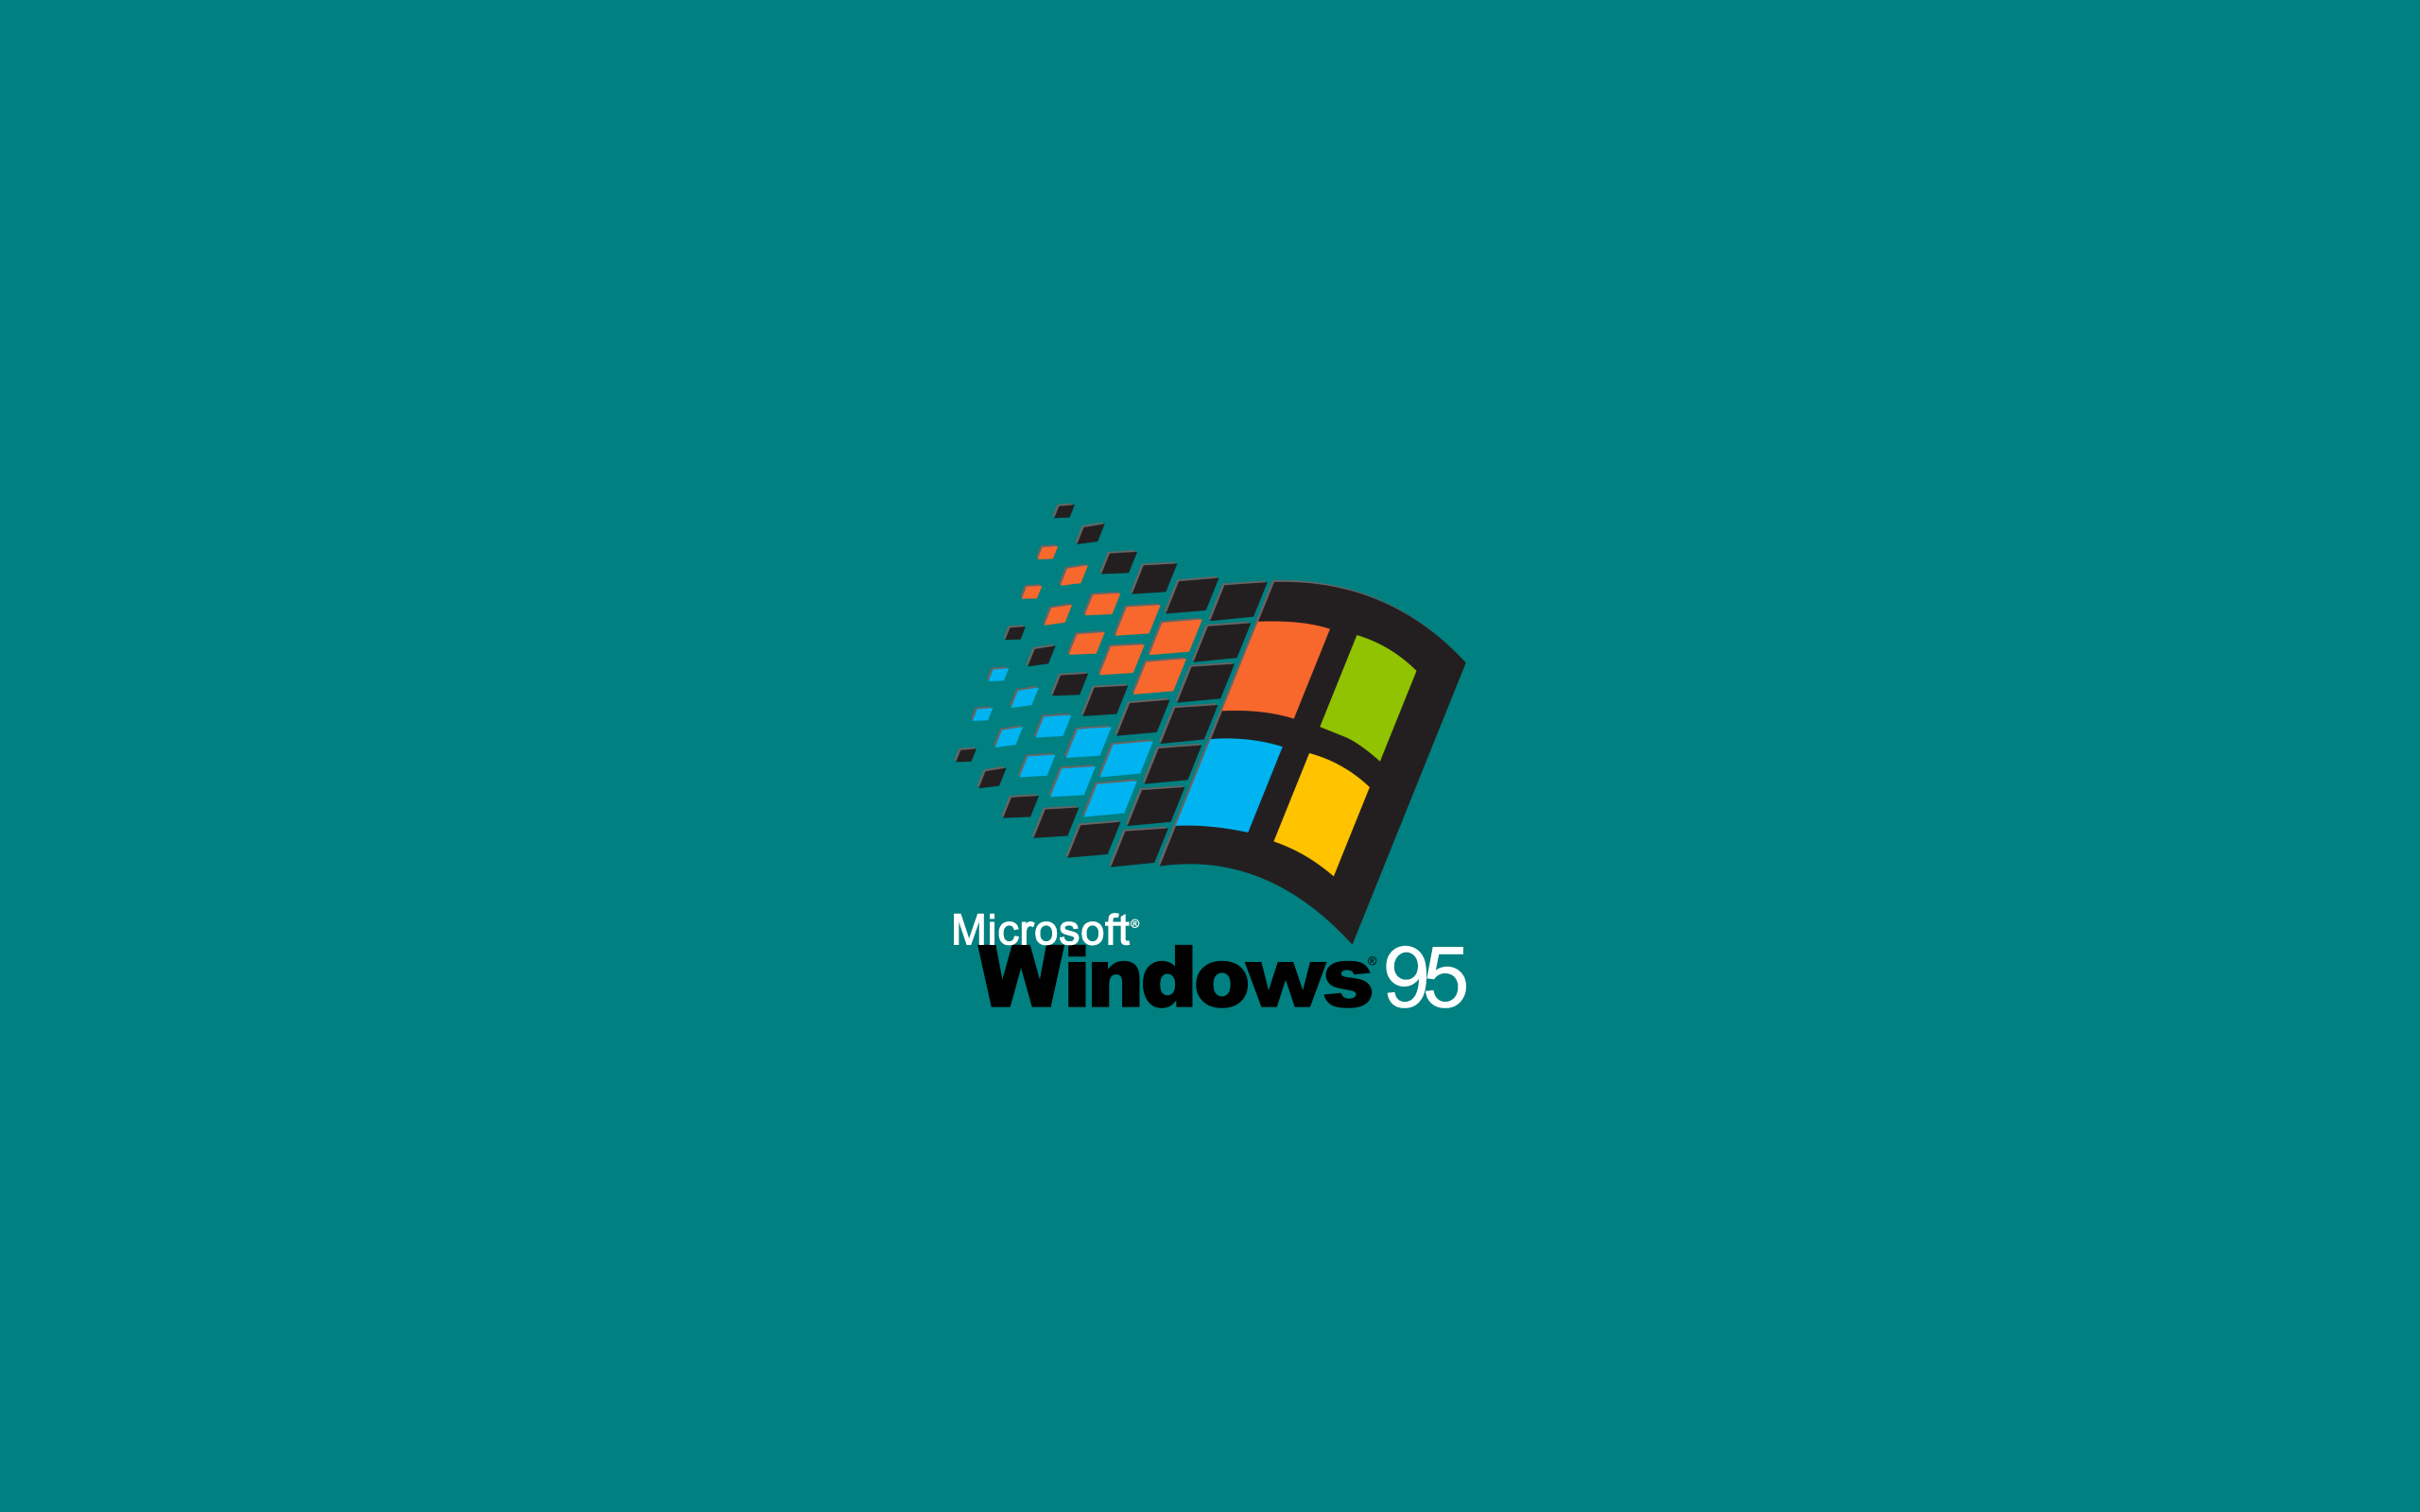 Window Windows 95 Microsoft Windows Microsoft Green Background Minimalism Simple Background Si Windows 95 Wallpaper Windows 10 Windows Wallpaper